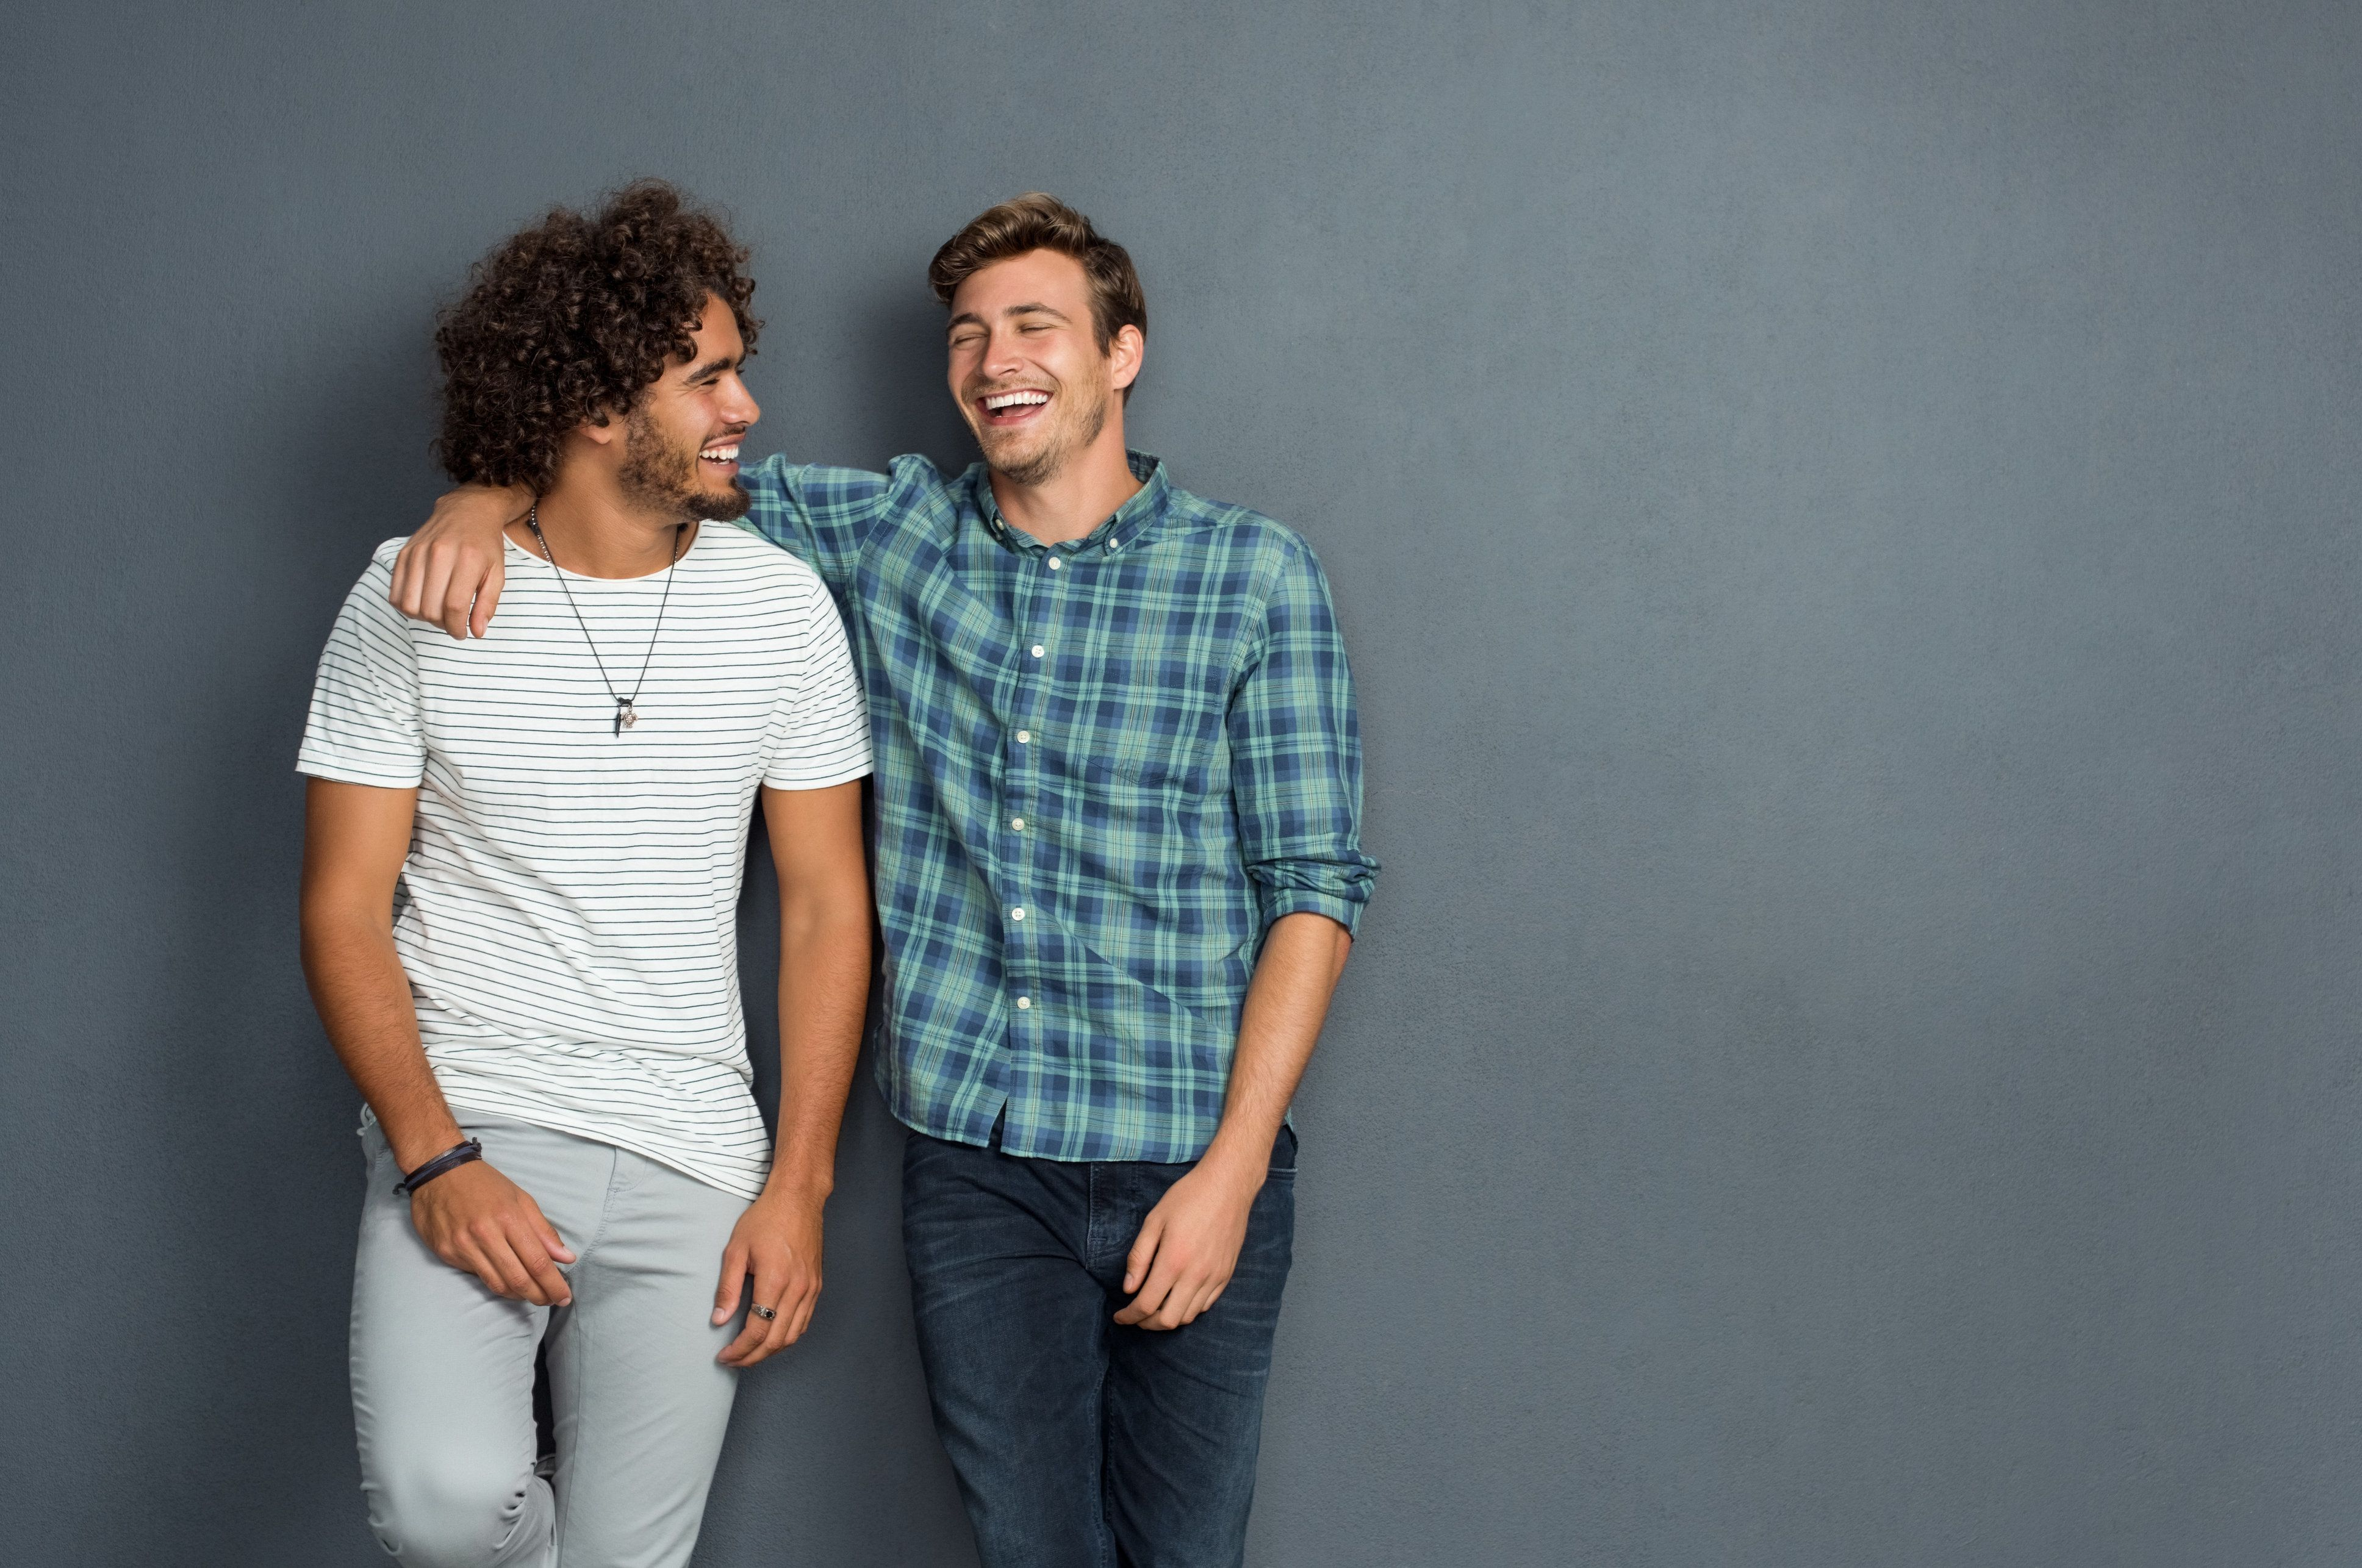 'Bromances' Aren't Ruining Romantic Relationships, They're Saving